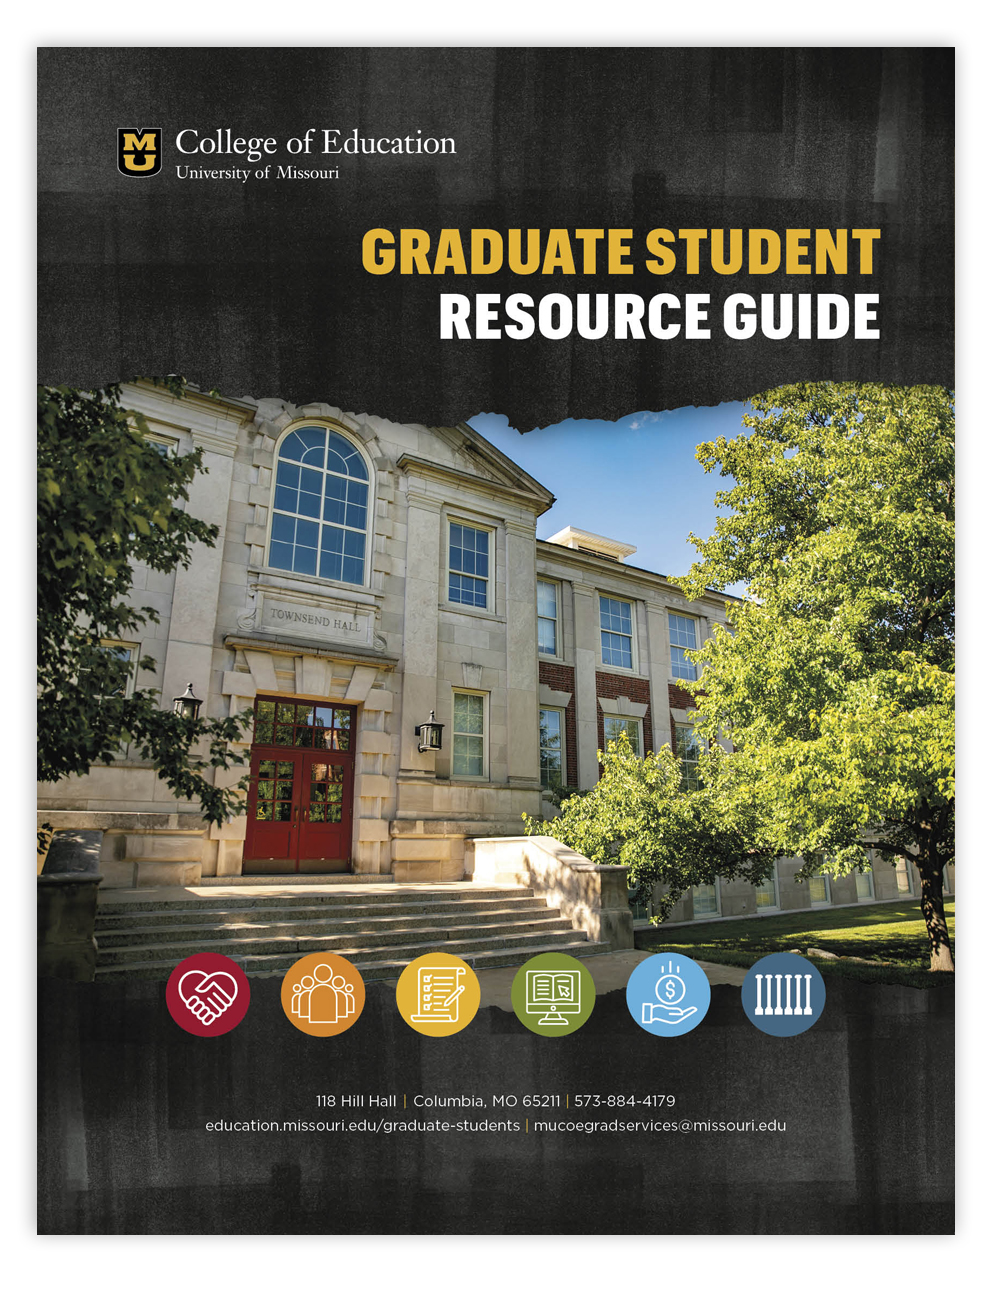 University of Missouri College of Education Graduate Student Resource Guide cover, photo of Townsend Hall, logo, contact info, icons